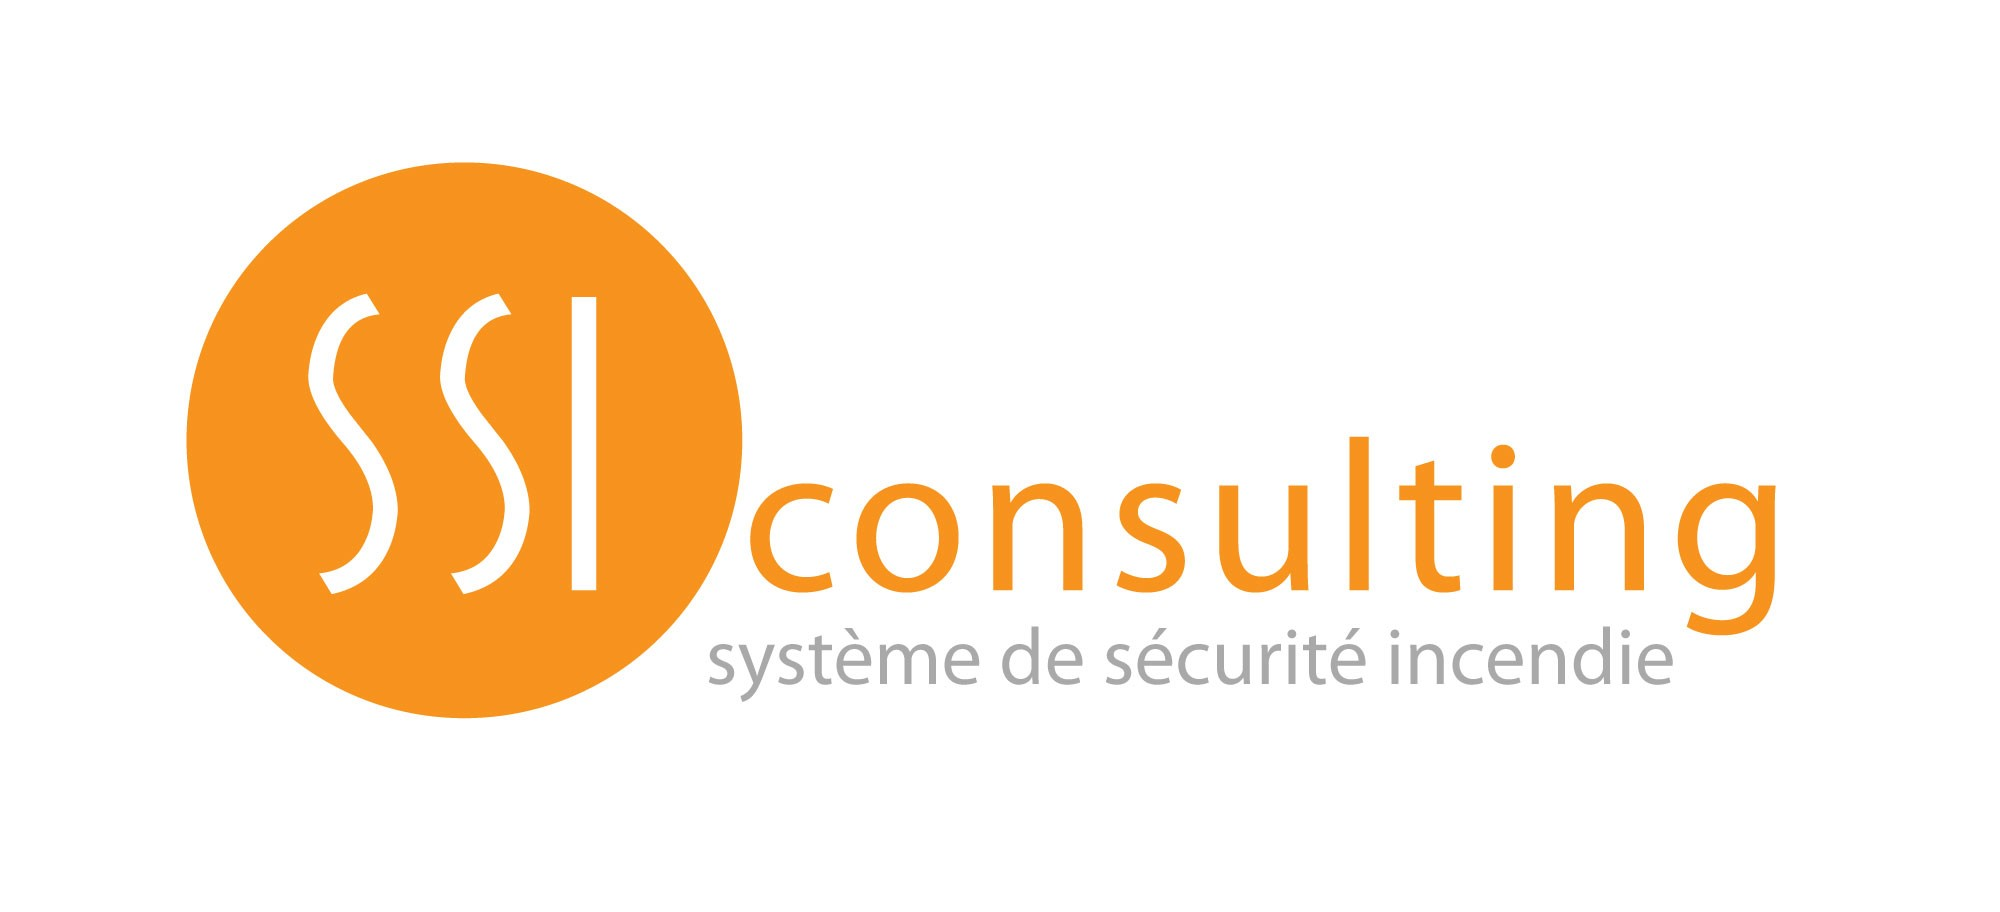 Logo SSI Consulting